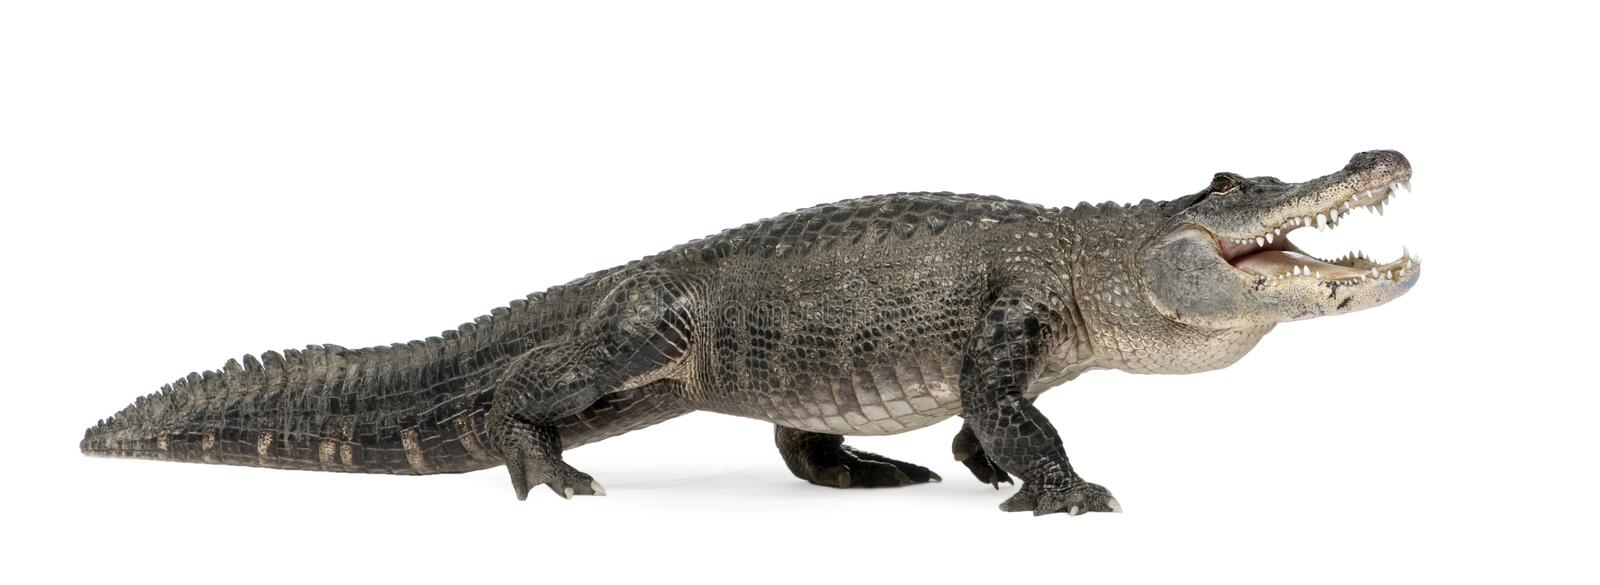 American Alligator - Alligator mississippiensis royalty free stock photos